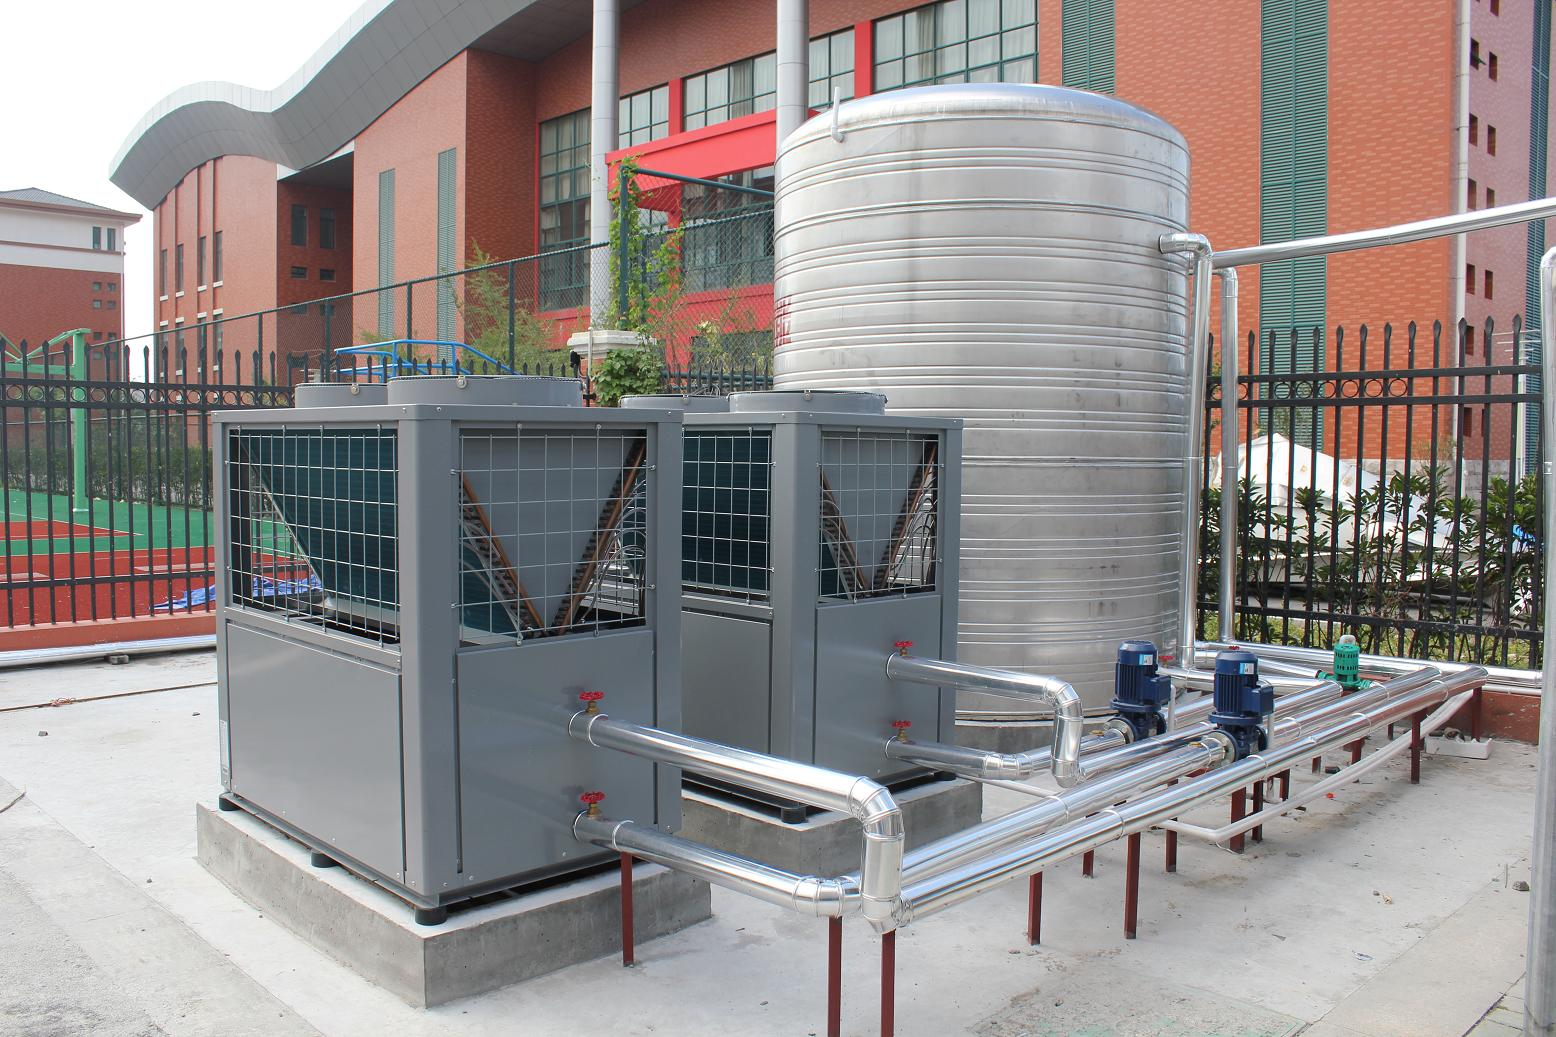 Hot water project for local school